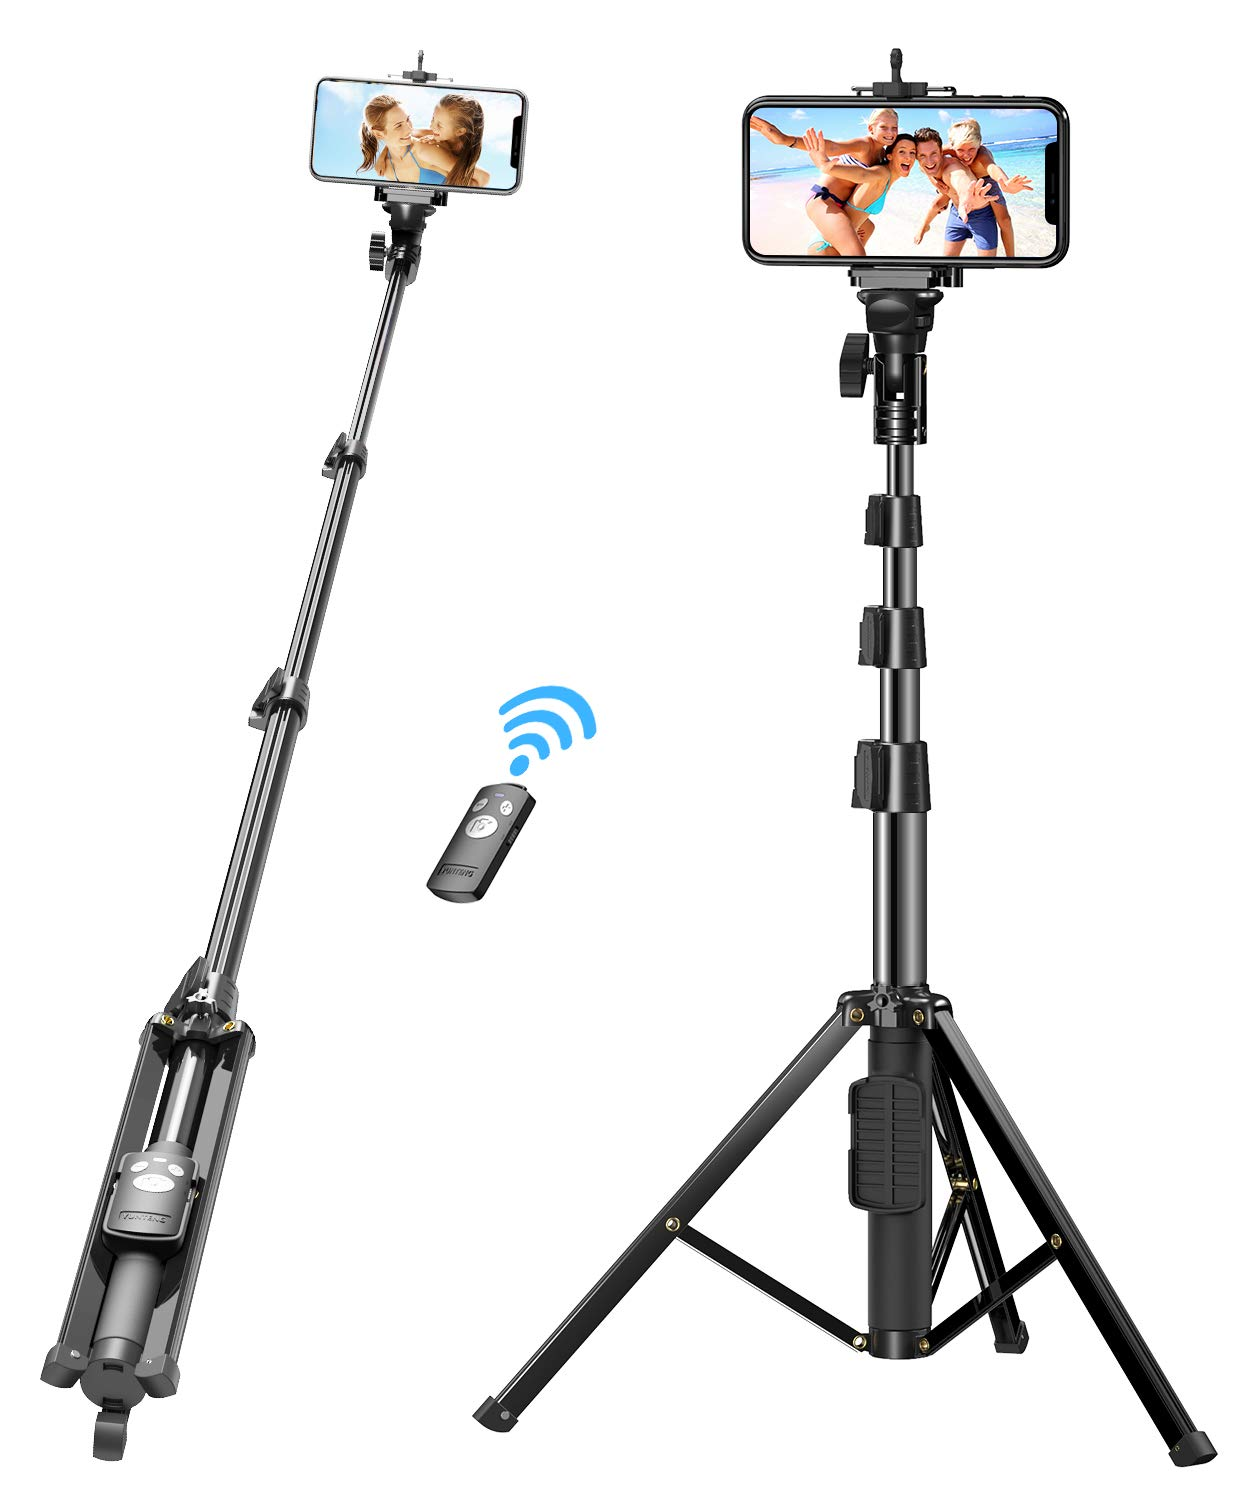 Babacom Selfie Stick, 133cm Extendable Stable Phone Tripod with Detachable Bluetooth Remote, Compatible with iPhone 12 Pro/12/12 Mini/11/XS Max/XR/X/8 Plus, Samsung Note 10 Plus/S20/S10, Gopro, Camera